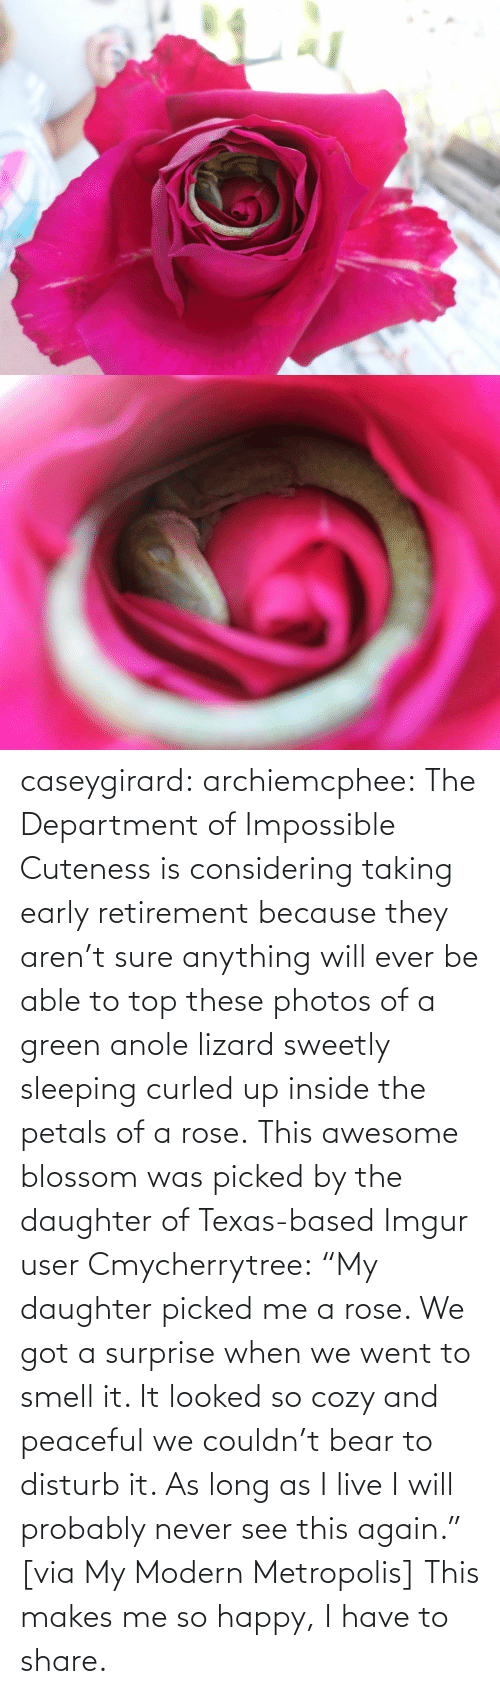 "carolina: caseygirard:  archiemcphee:   The Department of Impossible Cuteness is considering taking early retirement because they aren't sure anything will ever be able to top these photos of a green anole lizard sweetly sleeping curled up inside the petals of a rose. This awesome blossom was picked by the daughter of Texas-based Imgur user Cmycherrytree: ""My daughter picked me a rose. We got a surprise when we went to smell it. It looked so cozy and peaceful we couldn't bear to disturb it. As long as I live I will probably never see this again."" [via My Modern Metropolis]   This makes me so happy, I have to share."